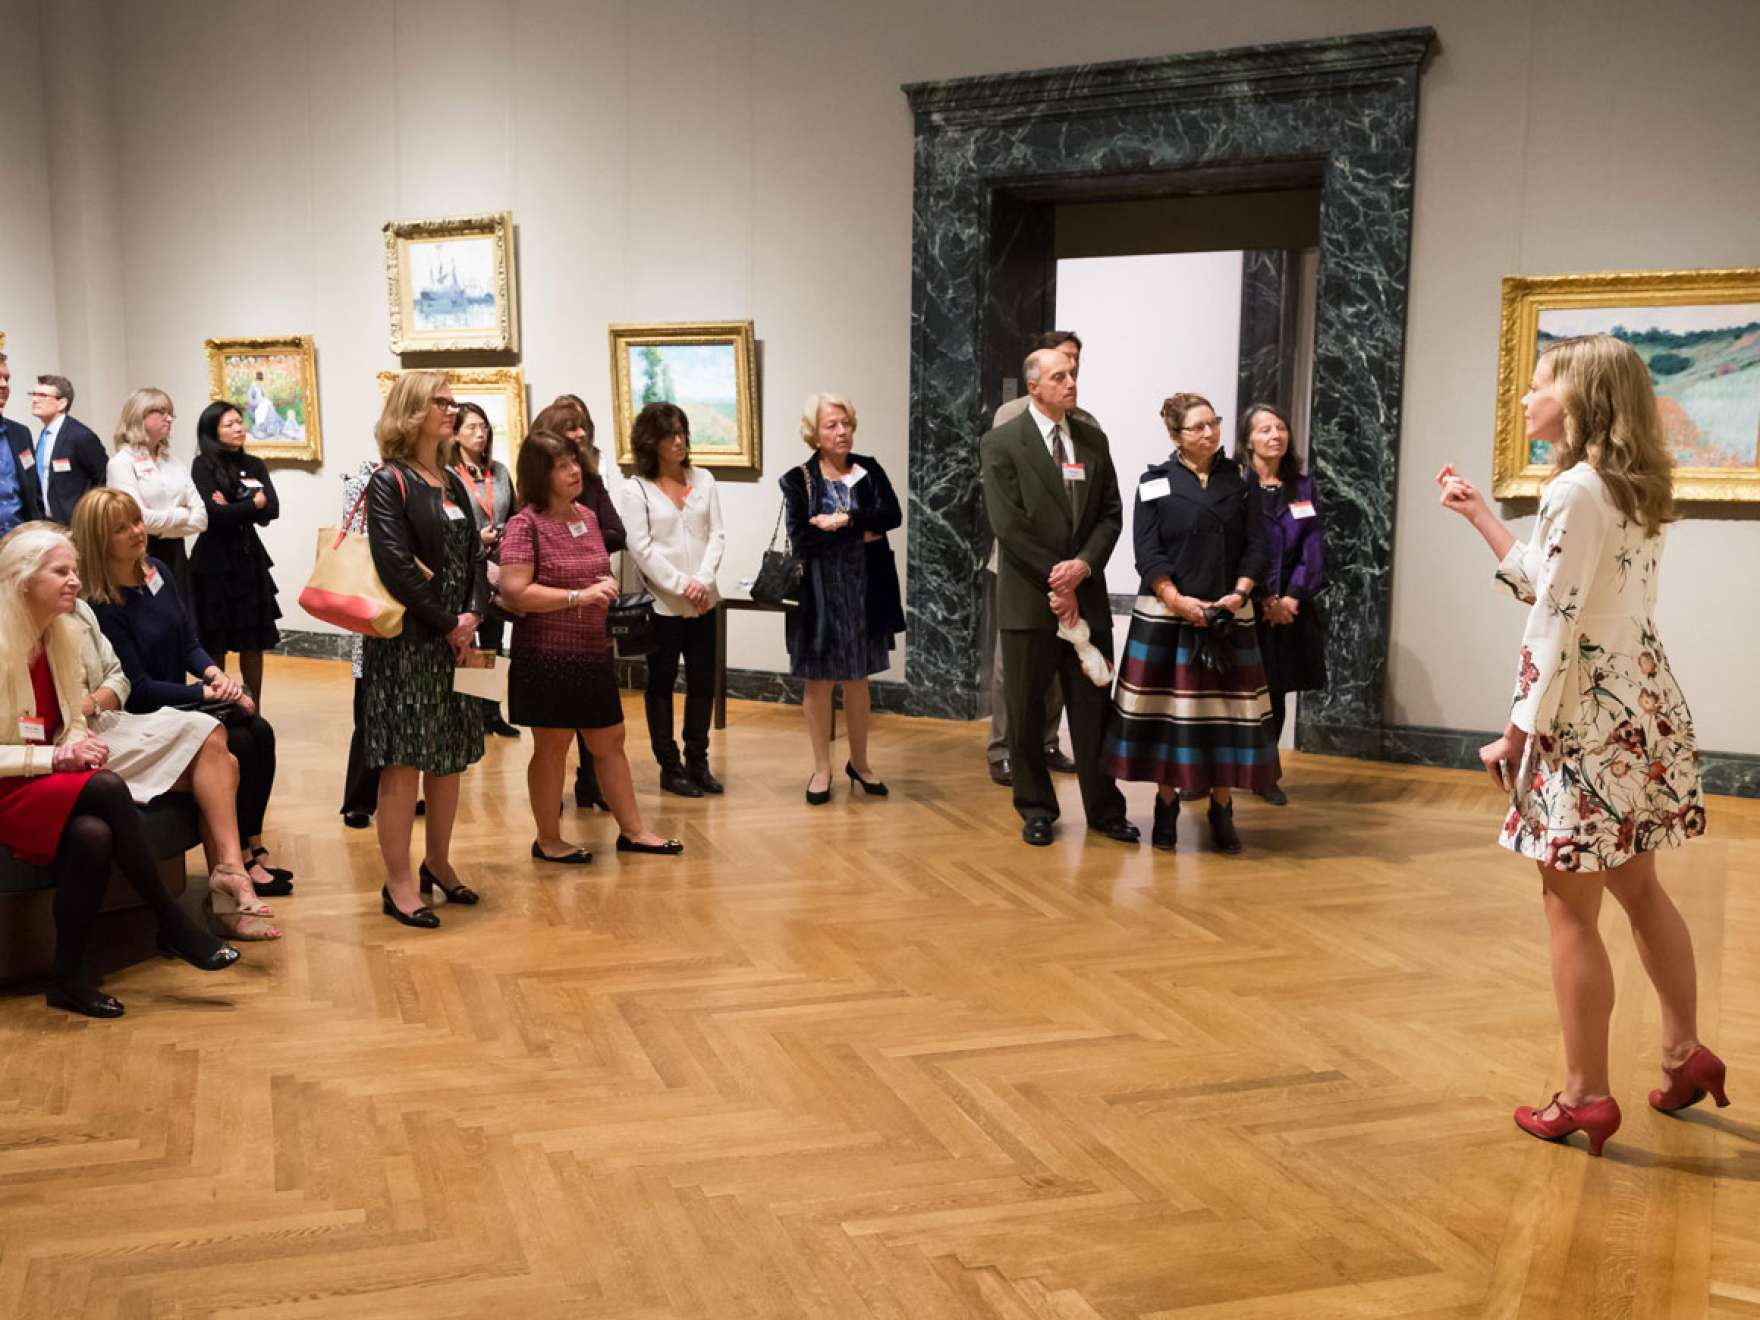 Katie Hanson giving a tour of the Monet Gallery to Patrons